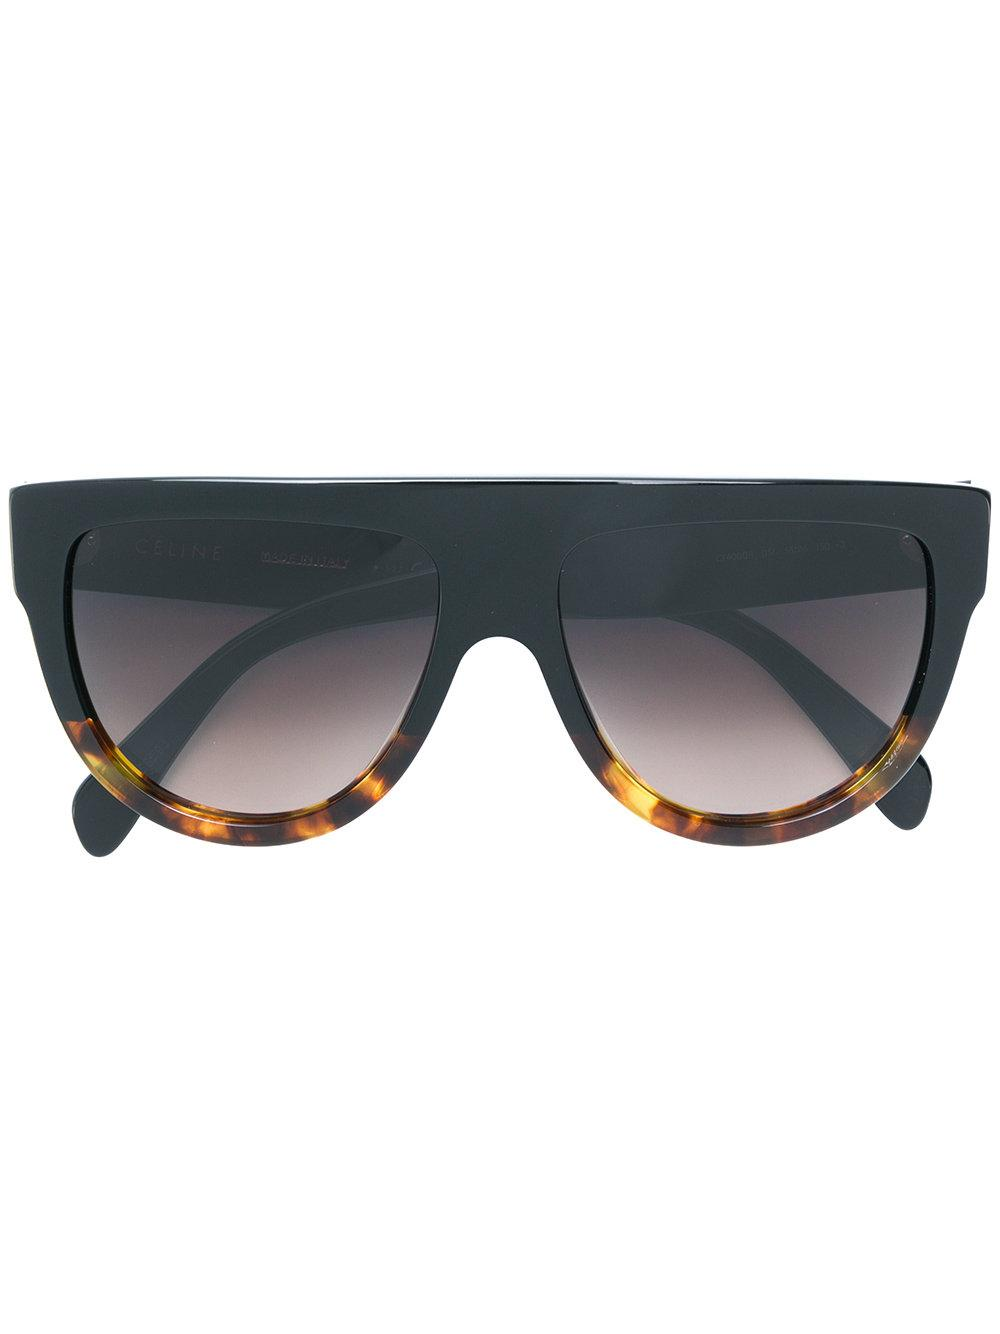 Celine Flat Top Aviator Sunglasses In Black